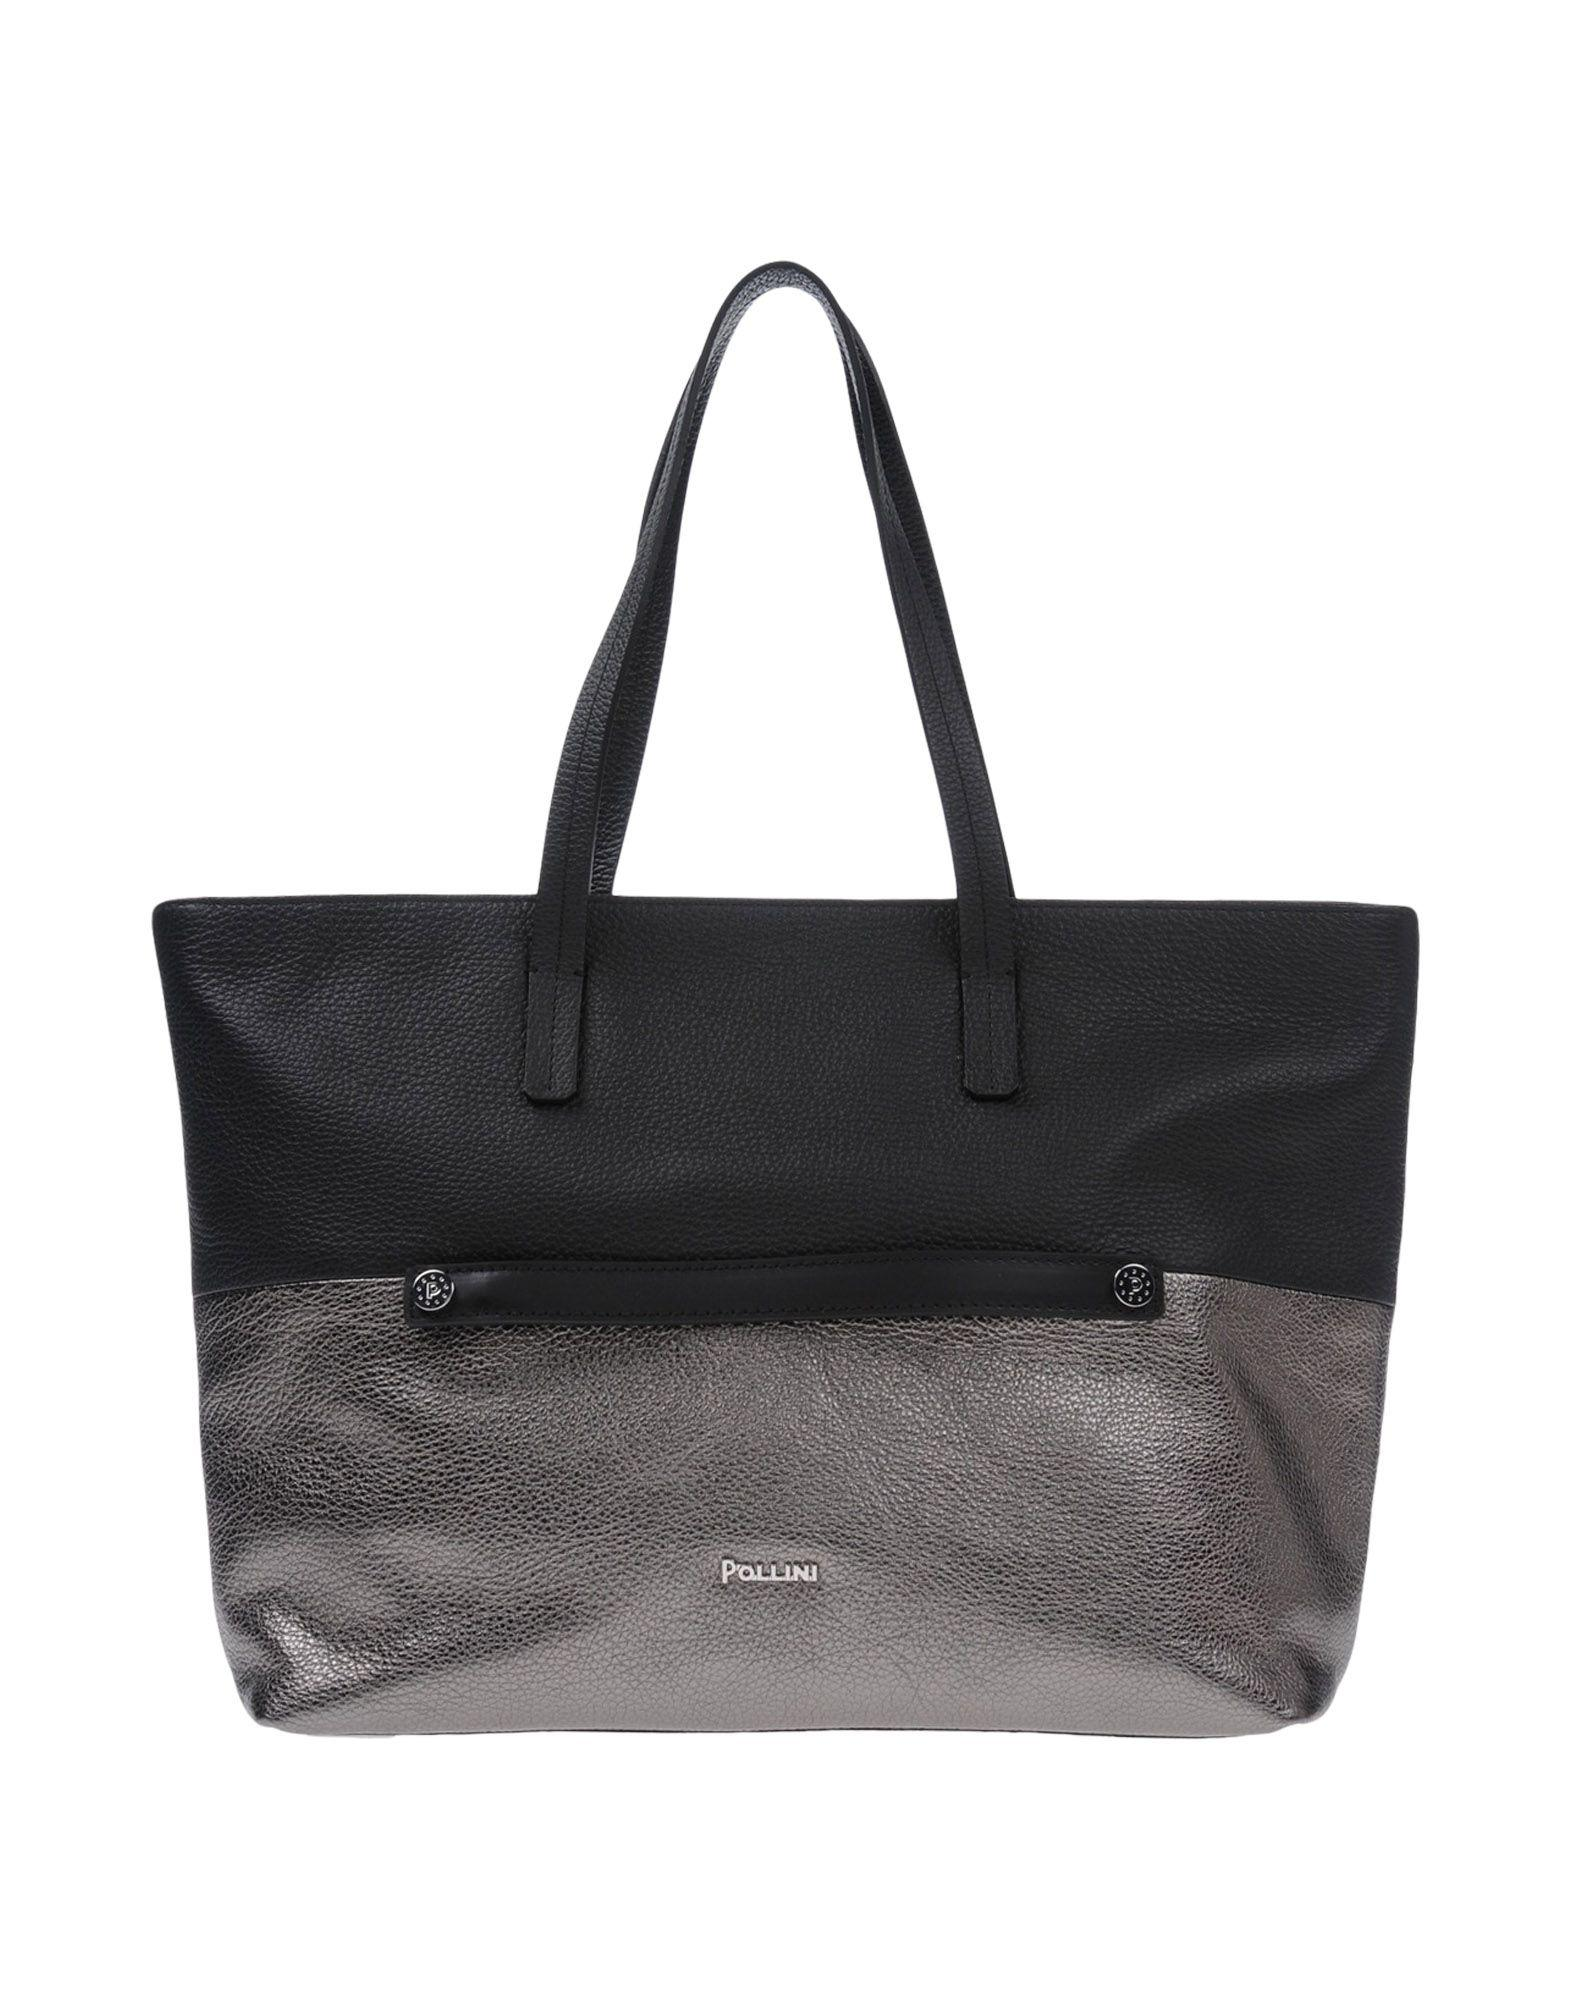 Pollini Handbag In Black